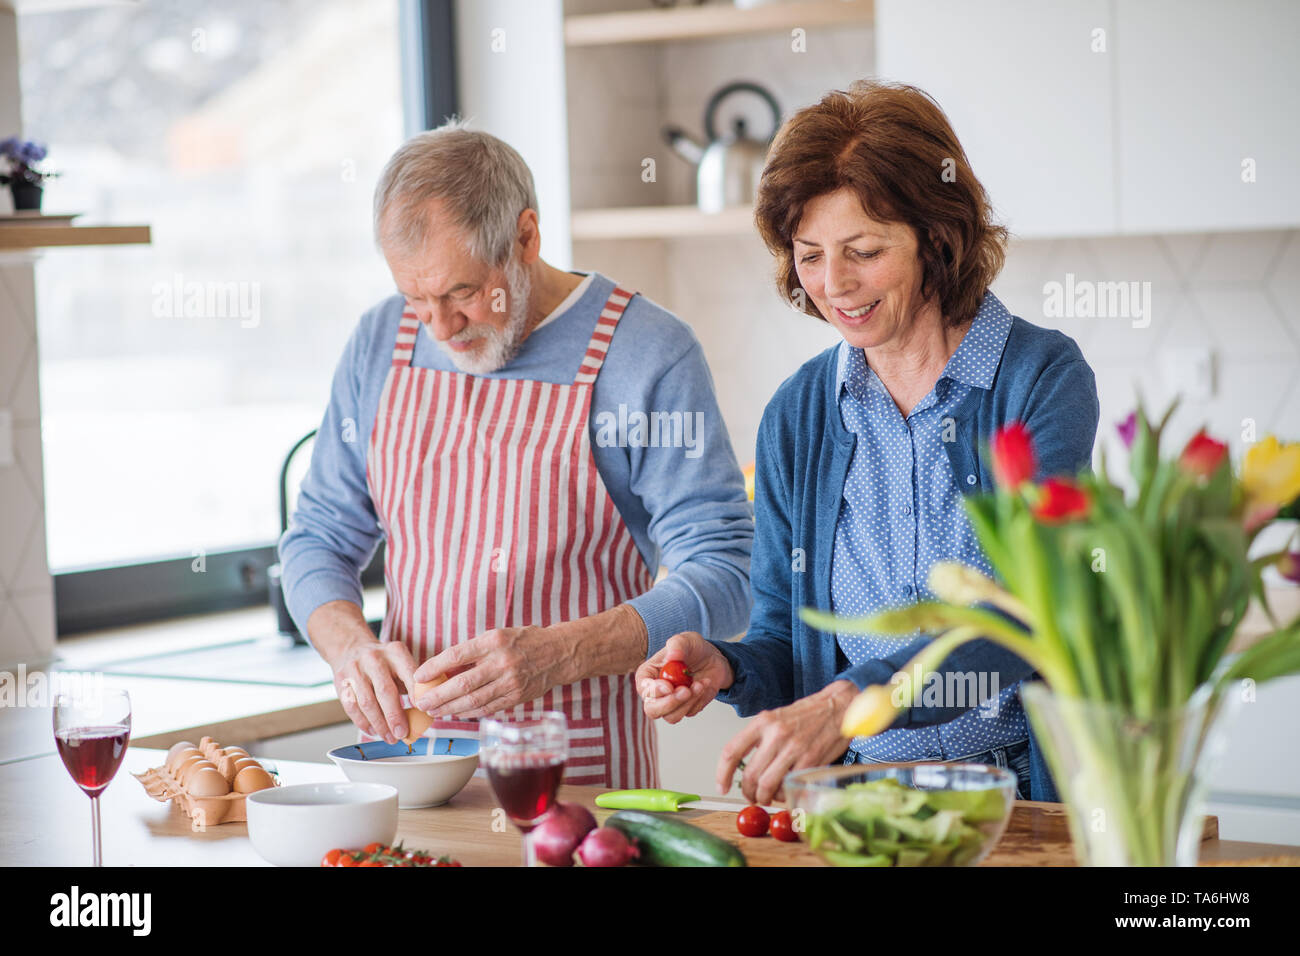 A portrait of senior couple in love indoors at home, cooking. - Stock Image